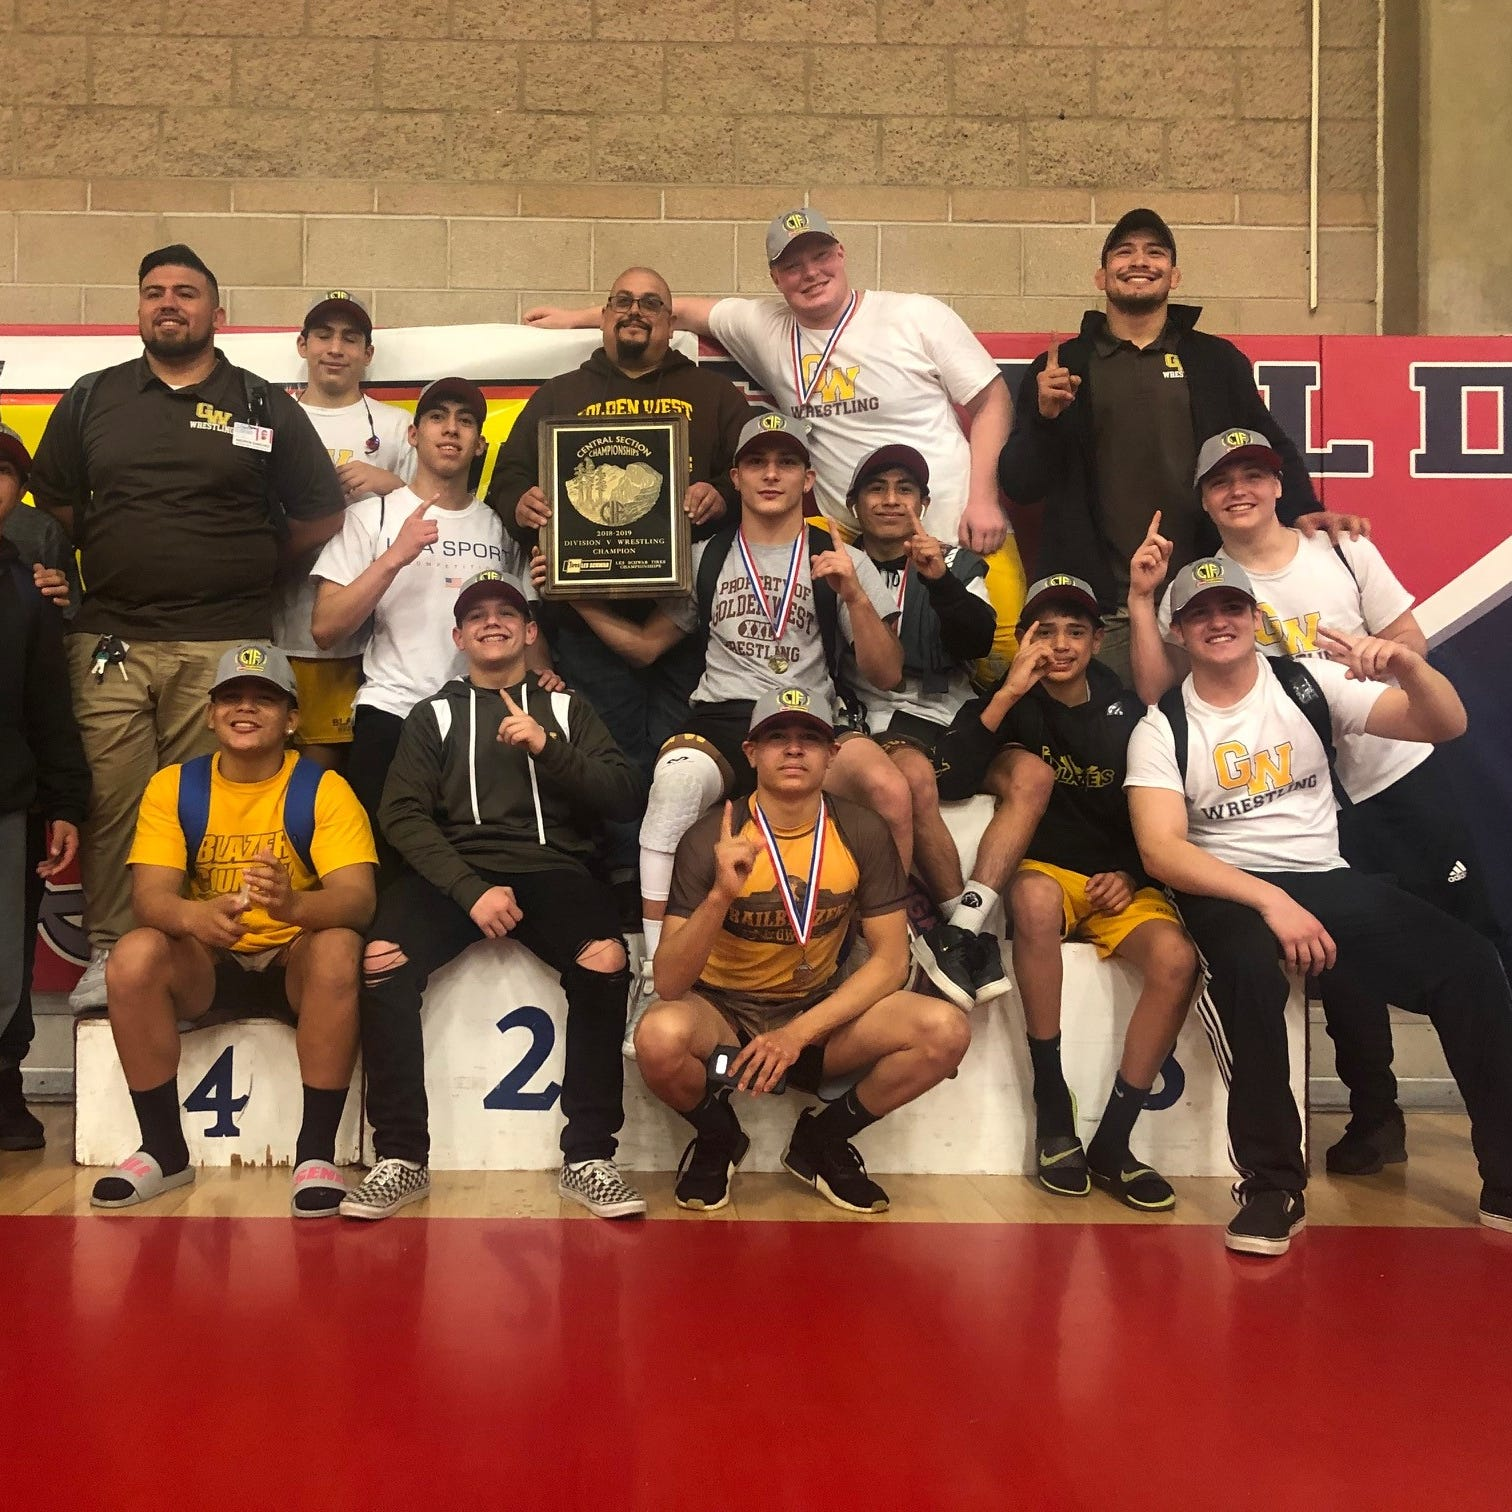 Golden West wrestling makes school history